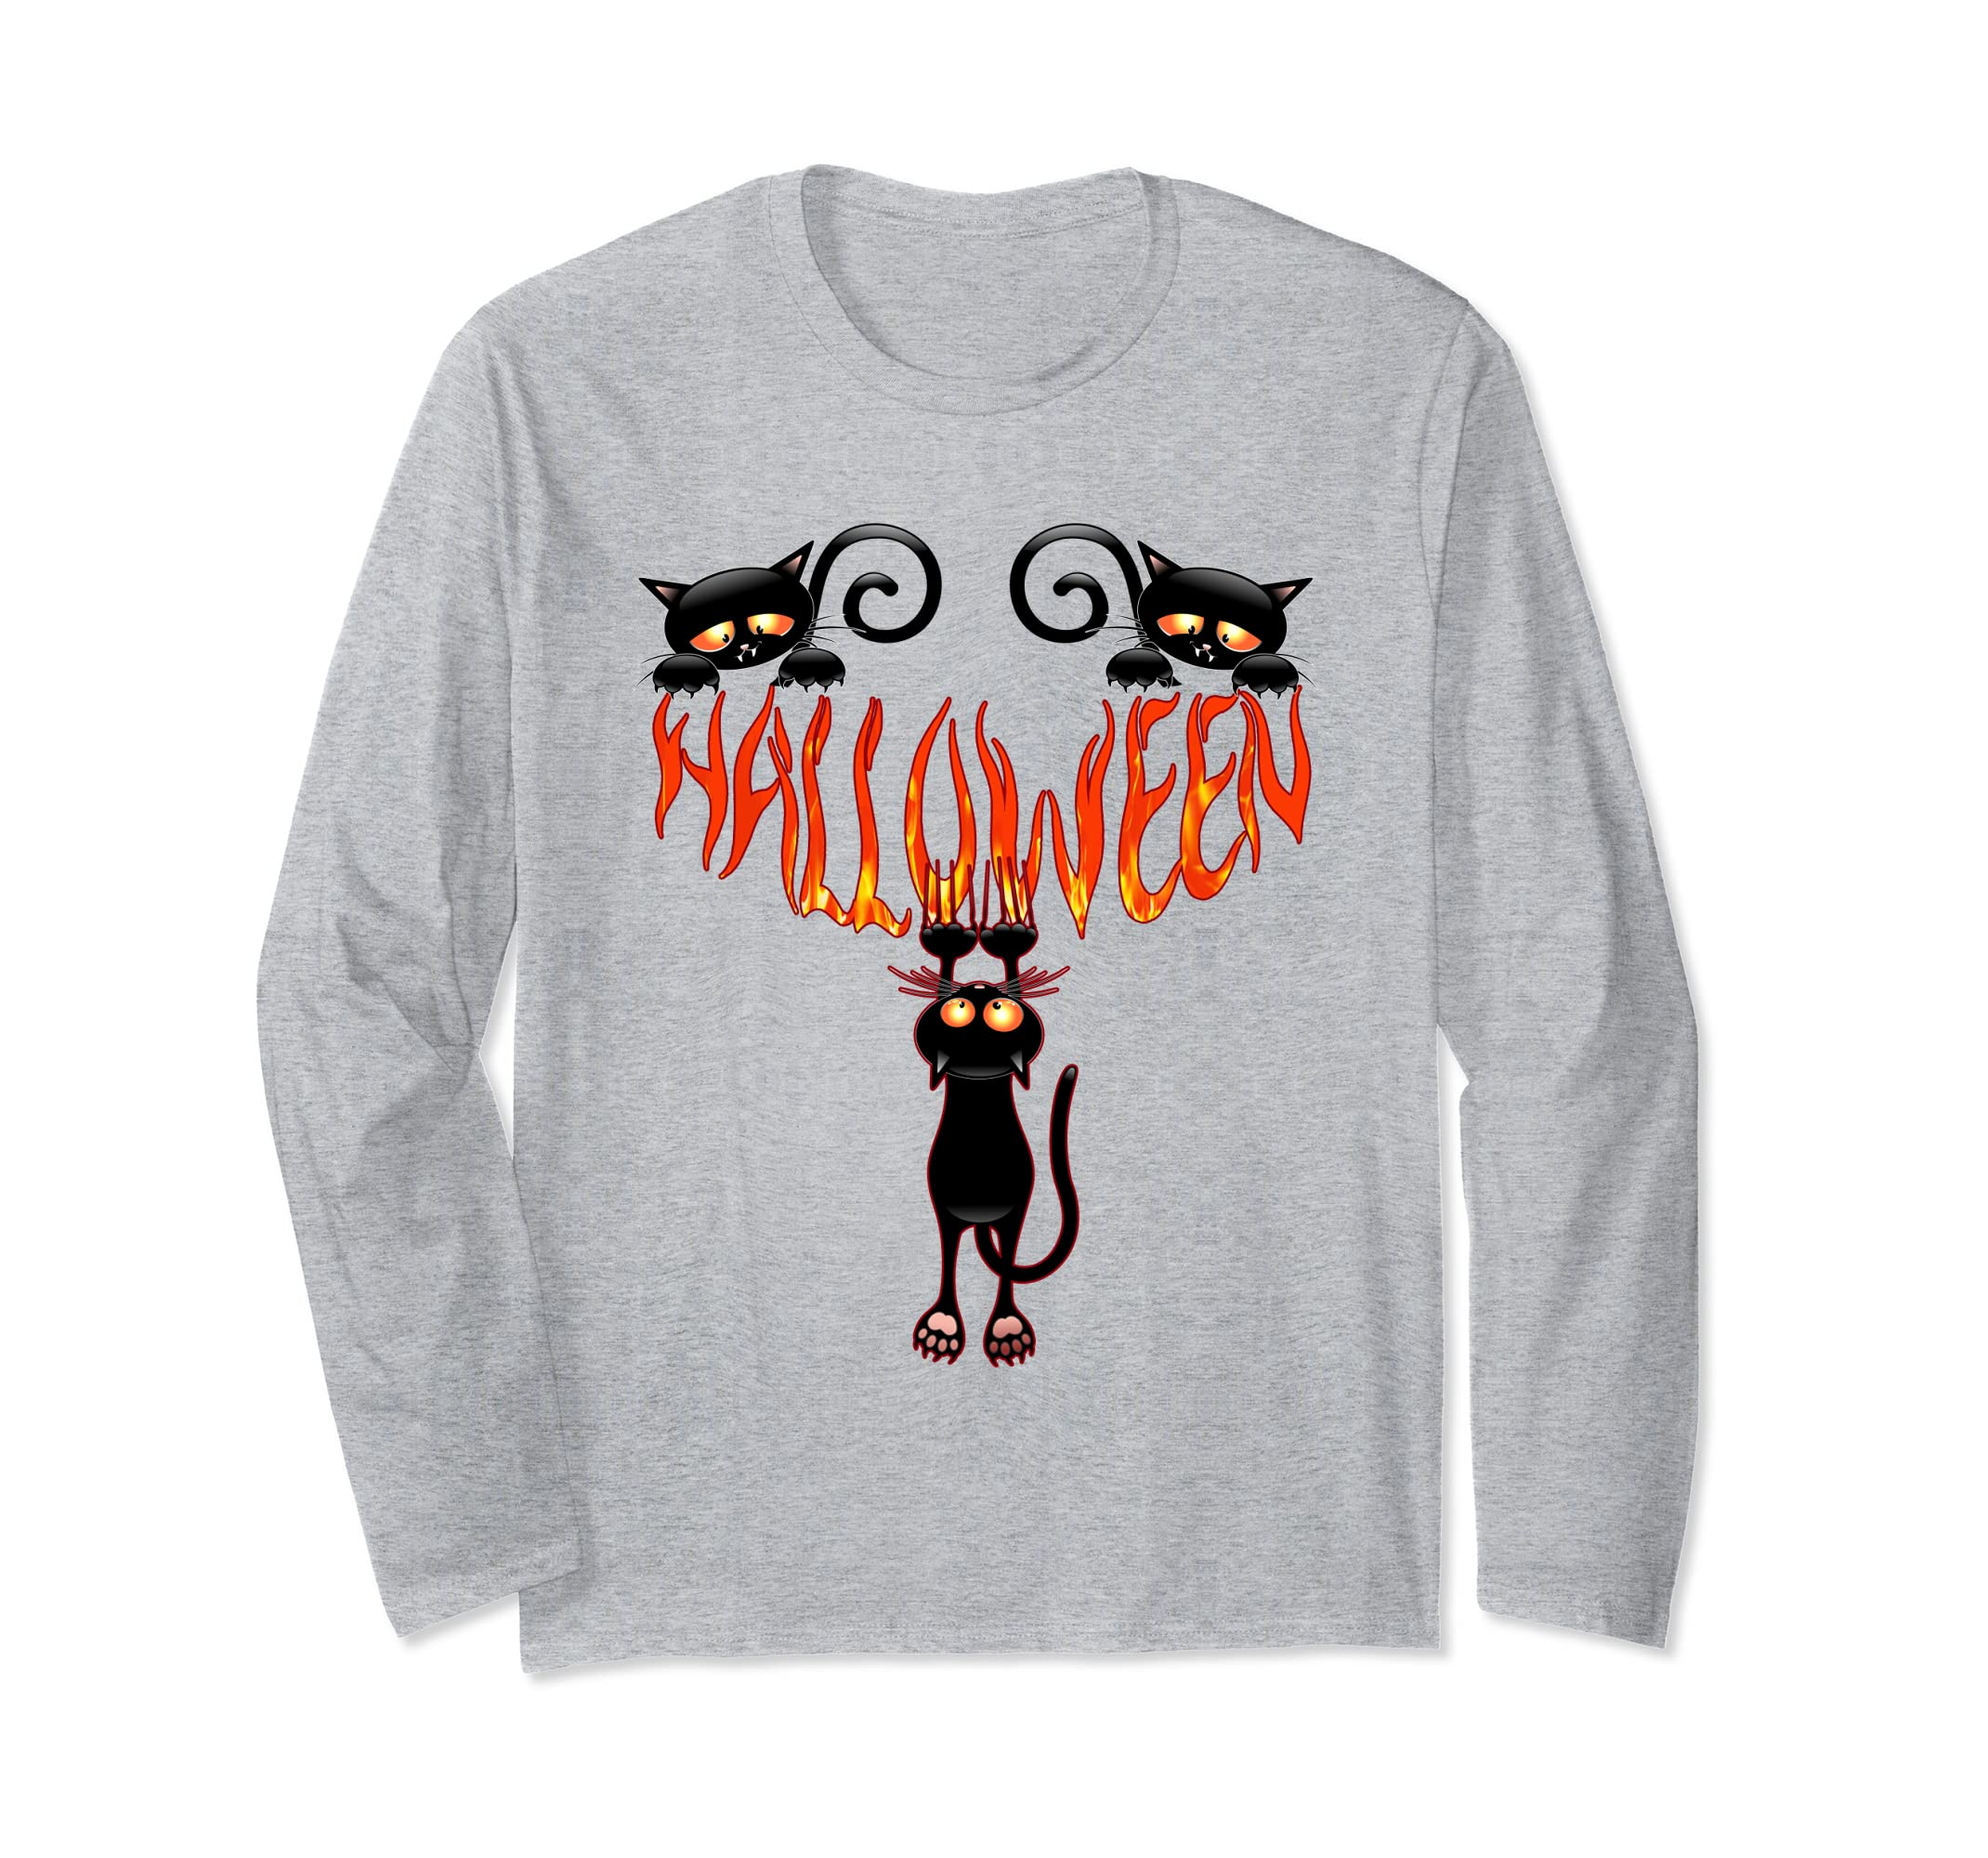 6363d7af Scary Halloween Black Cats Long Sleeve T Shirt Cool Gift-4LVS ...